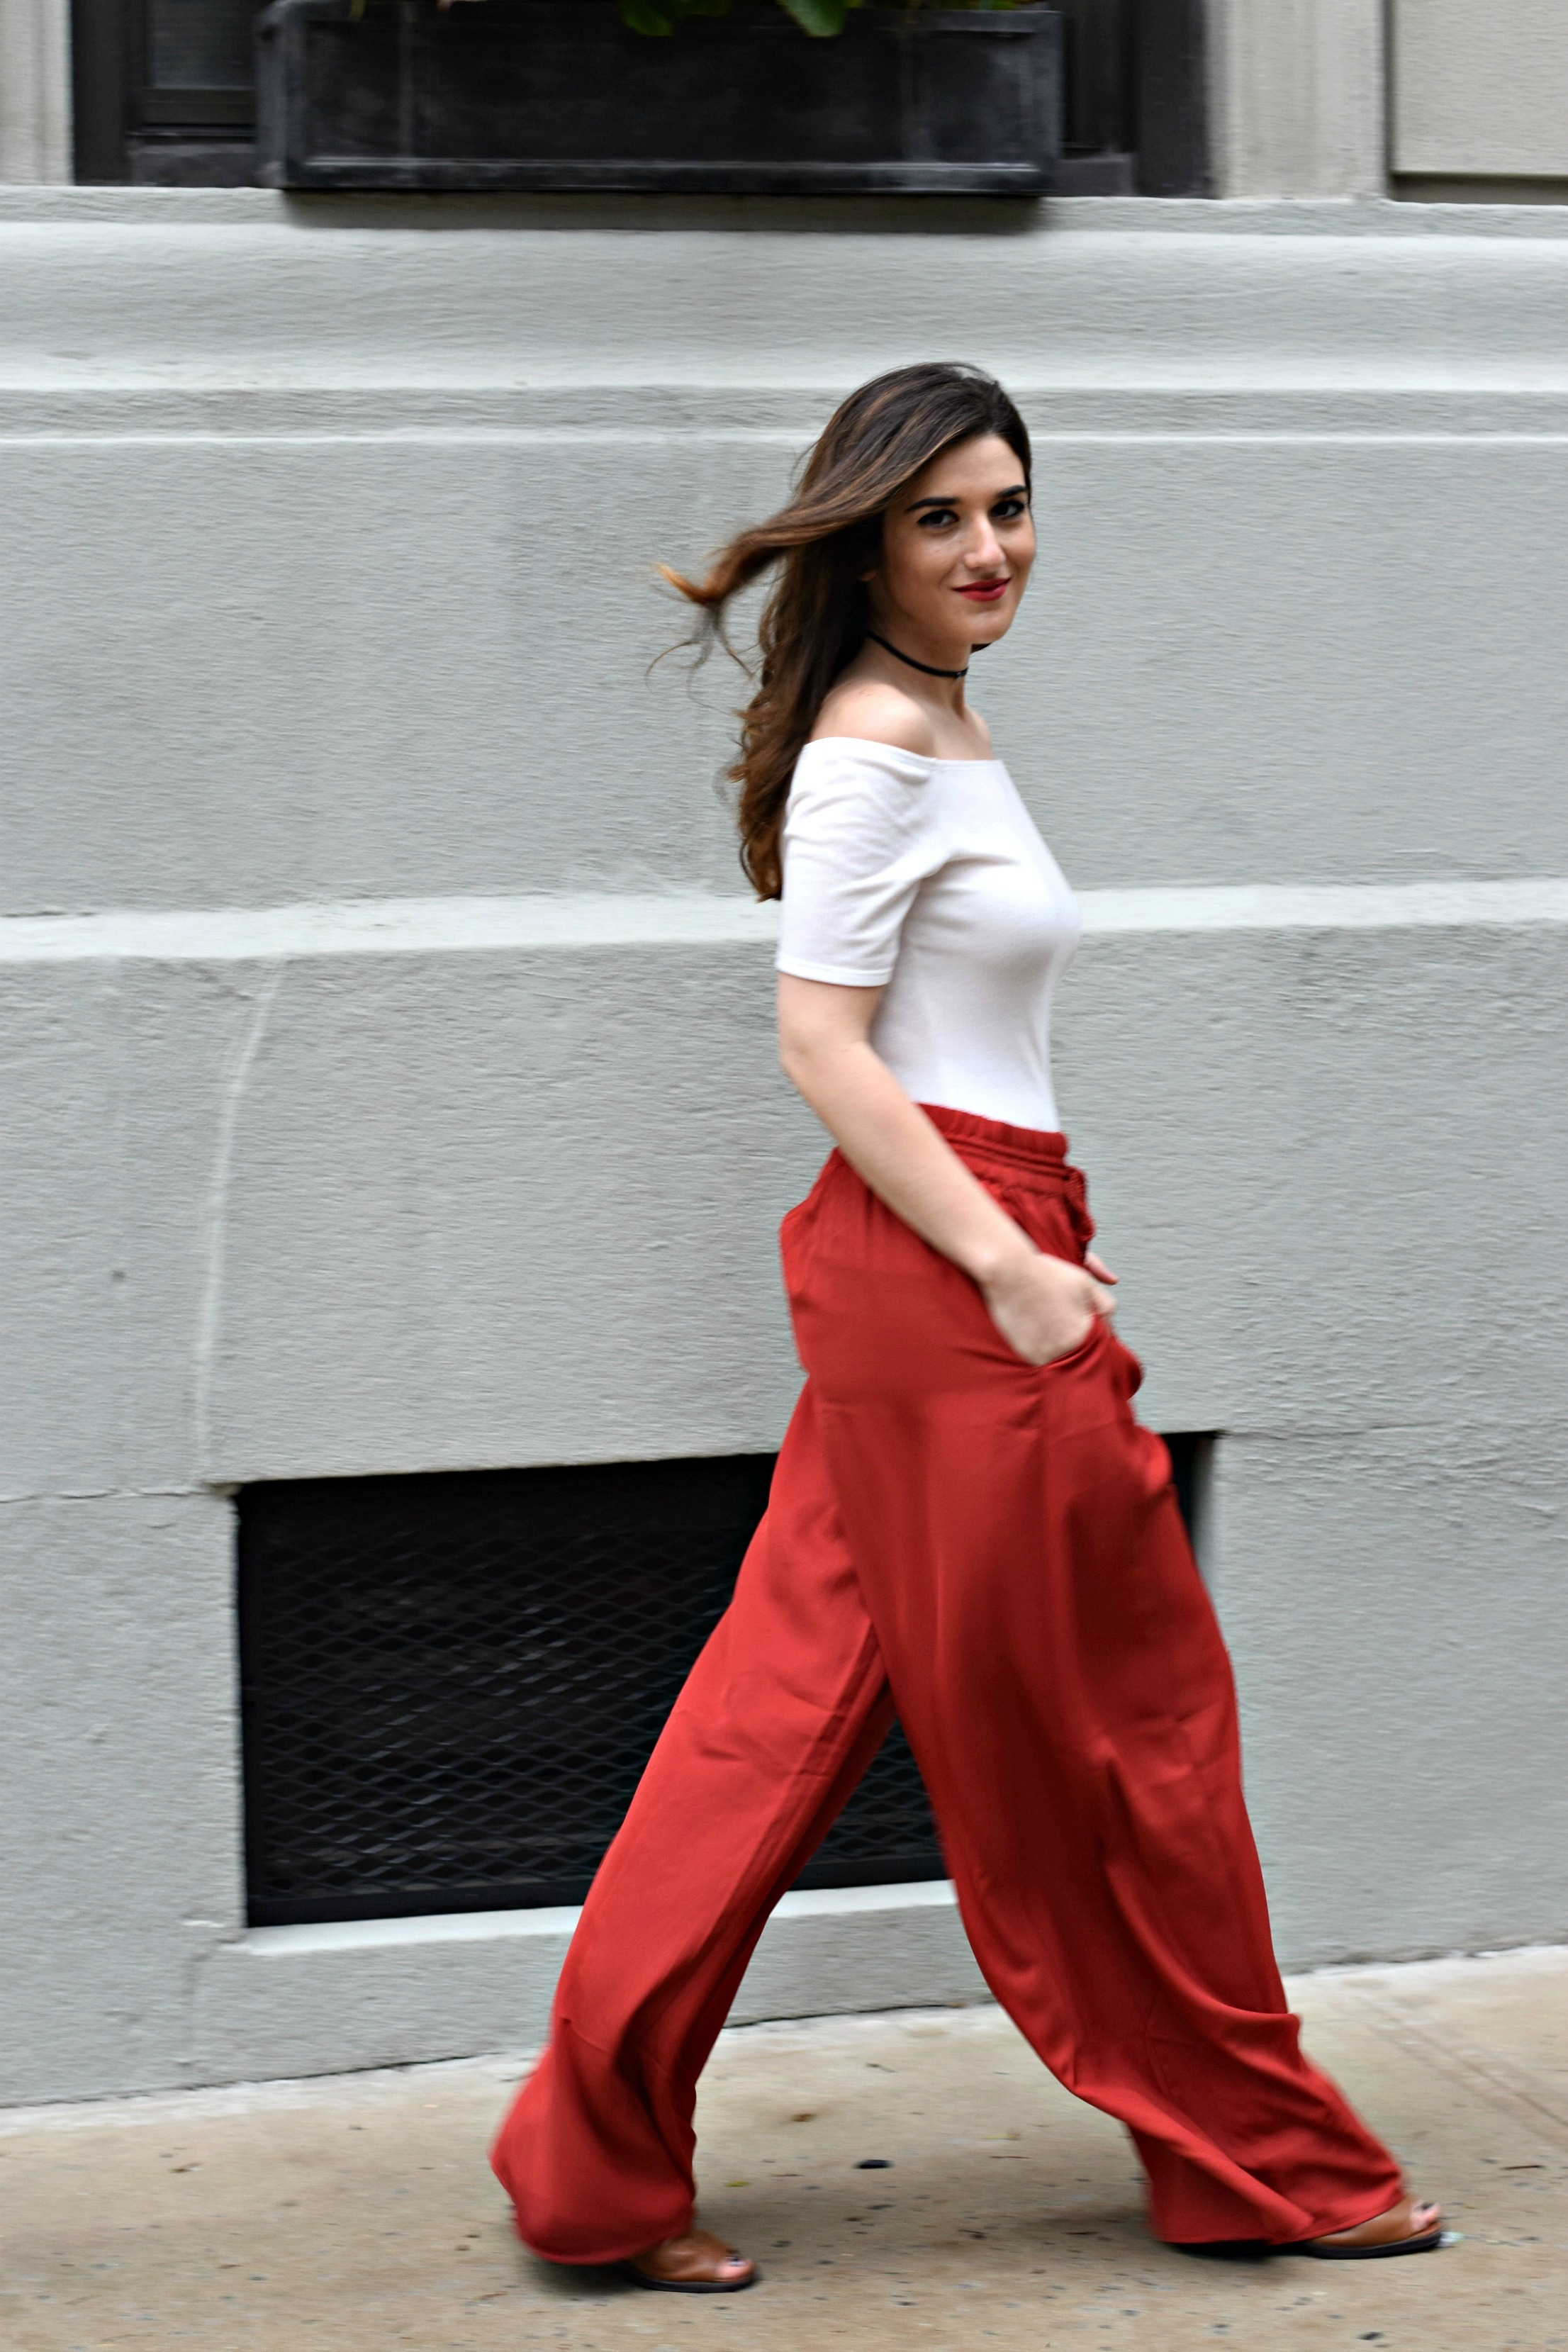 New Haircut Red Palazzo Pants Louboutins & Love Fashion Blog Esther Santer NYC Street Style Blogger Outfit OOTD Colorful Choker ELAHN Jewels Jewelry Cold Shoulder White Top Girl Women Pretty Shop Photoshoot Model New York City Spring Summer Hair Inspo.jpg